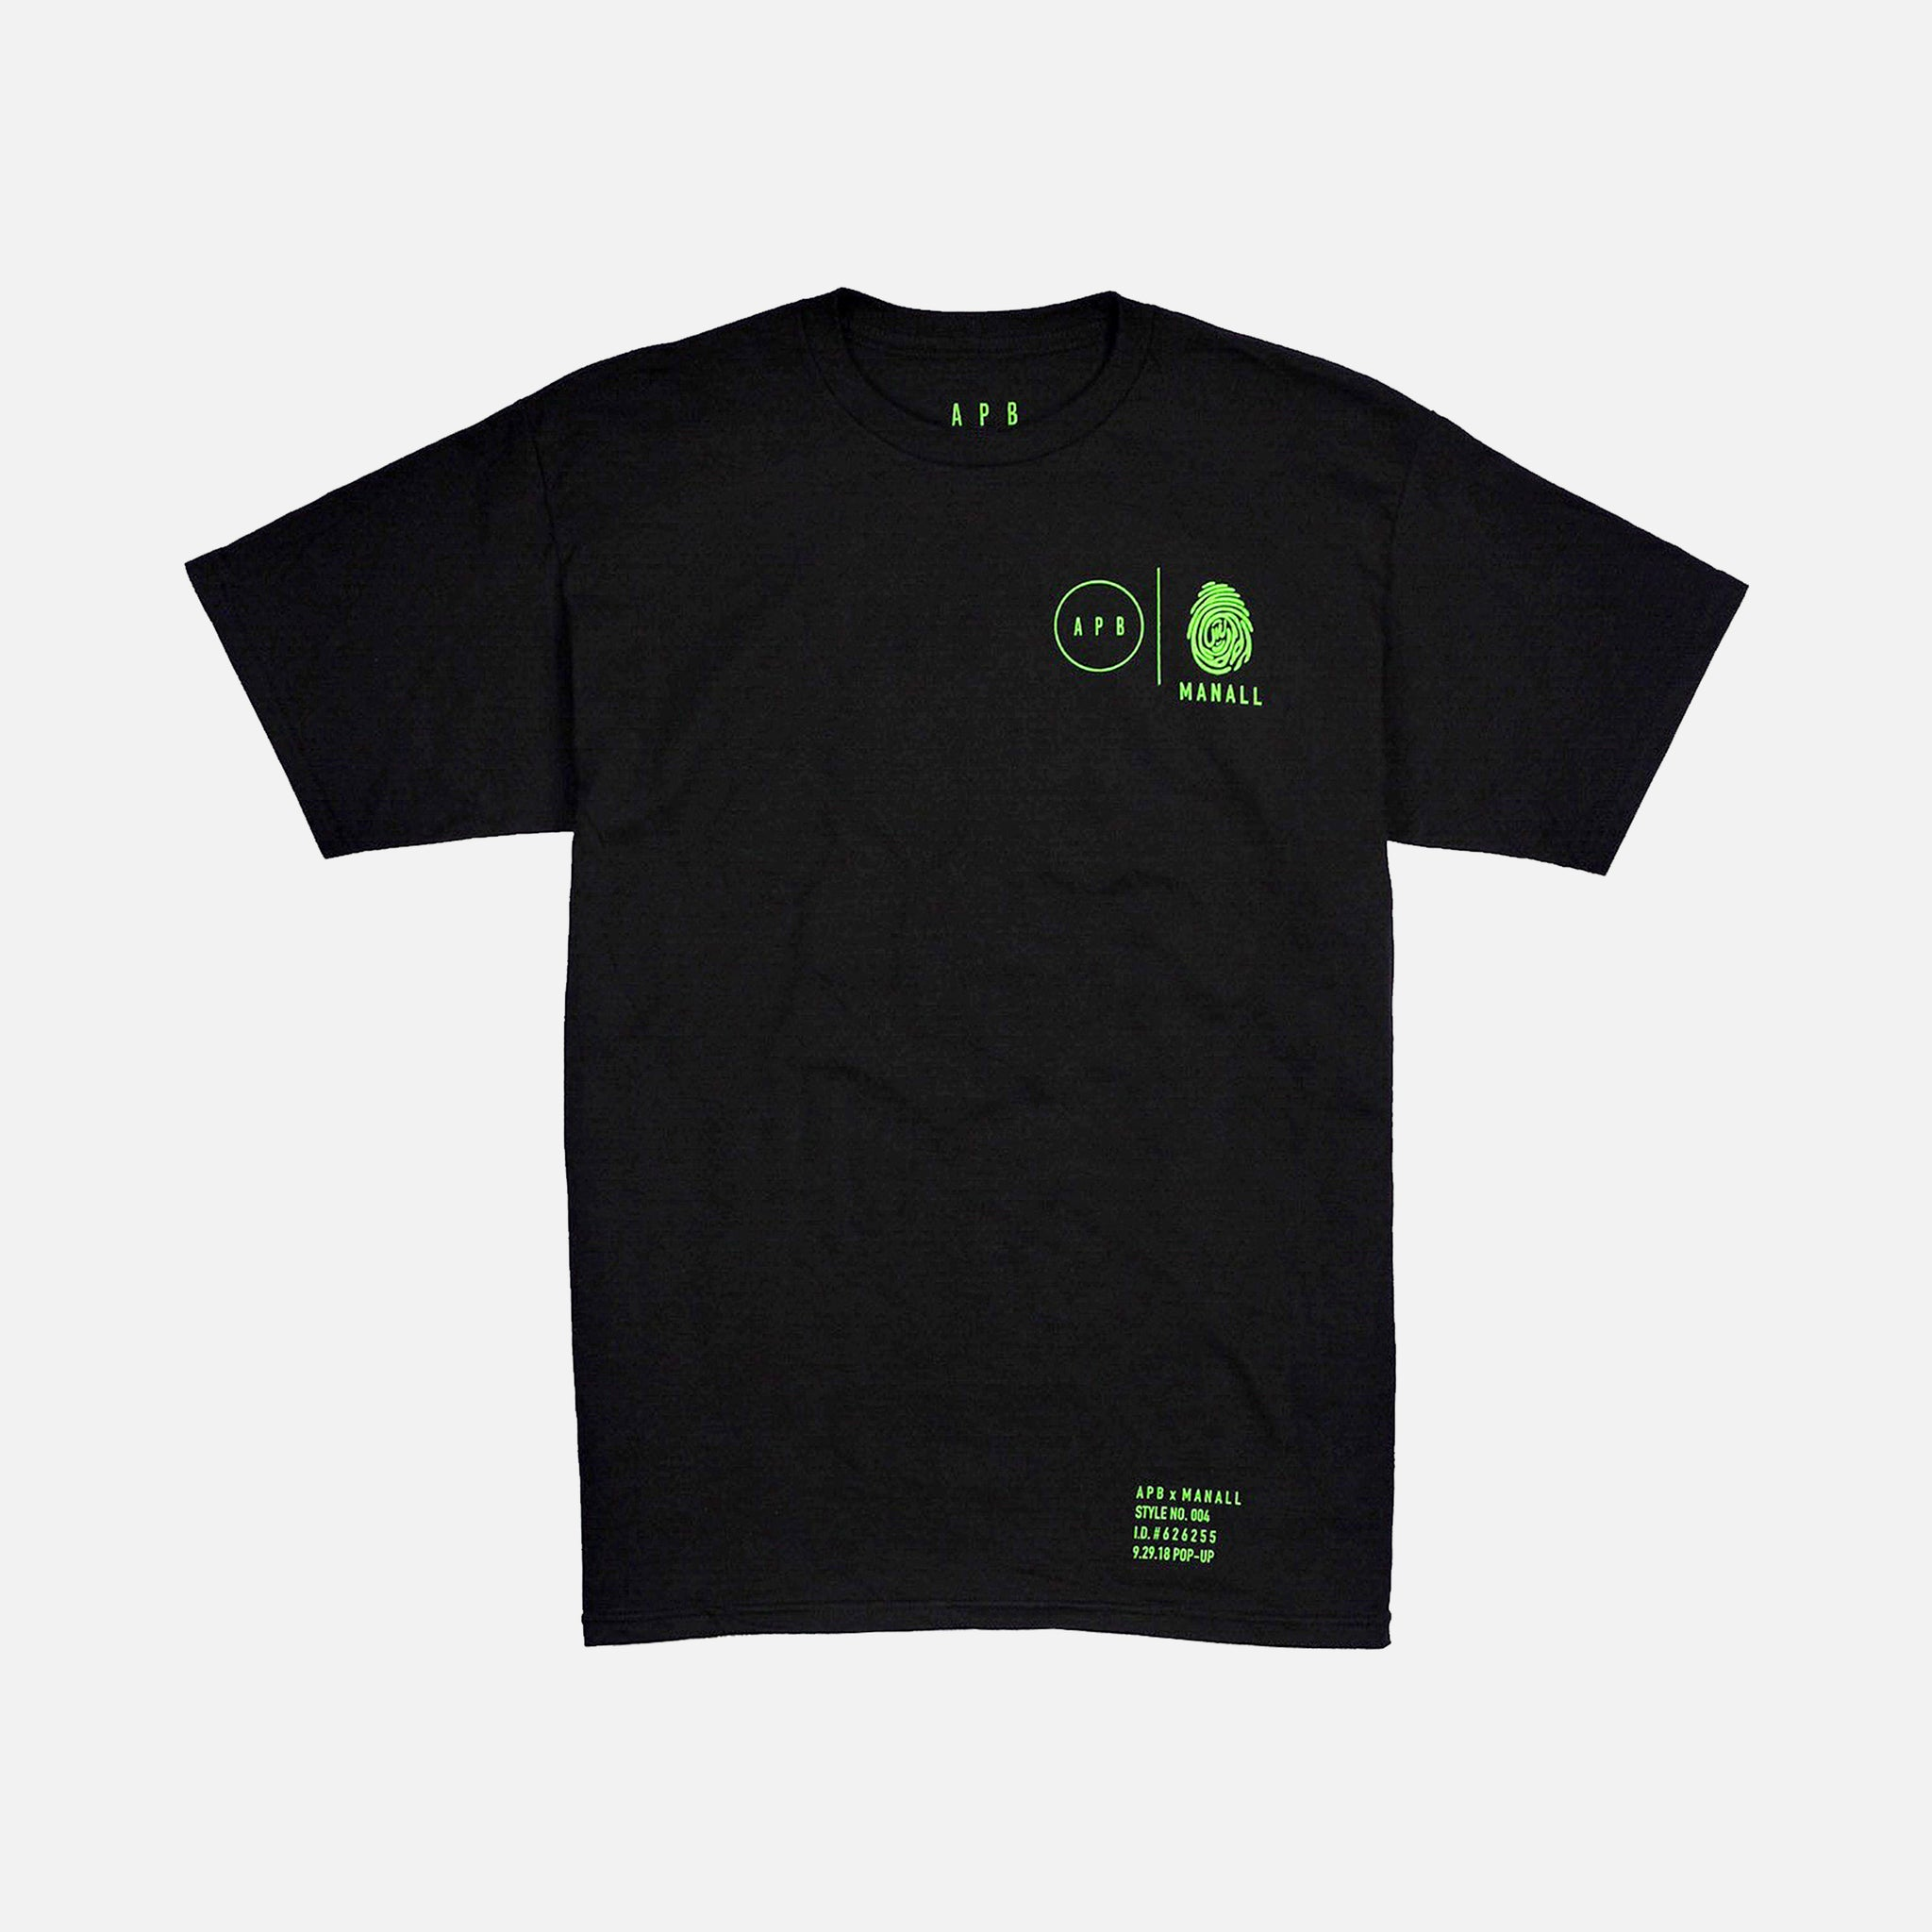 APB COLLAB T-SHIRT - BLACK